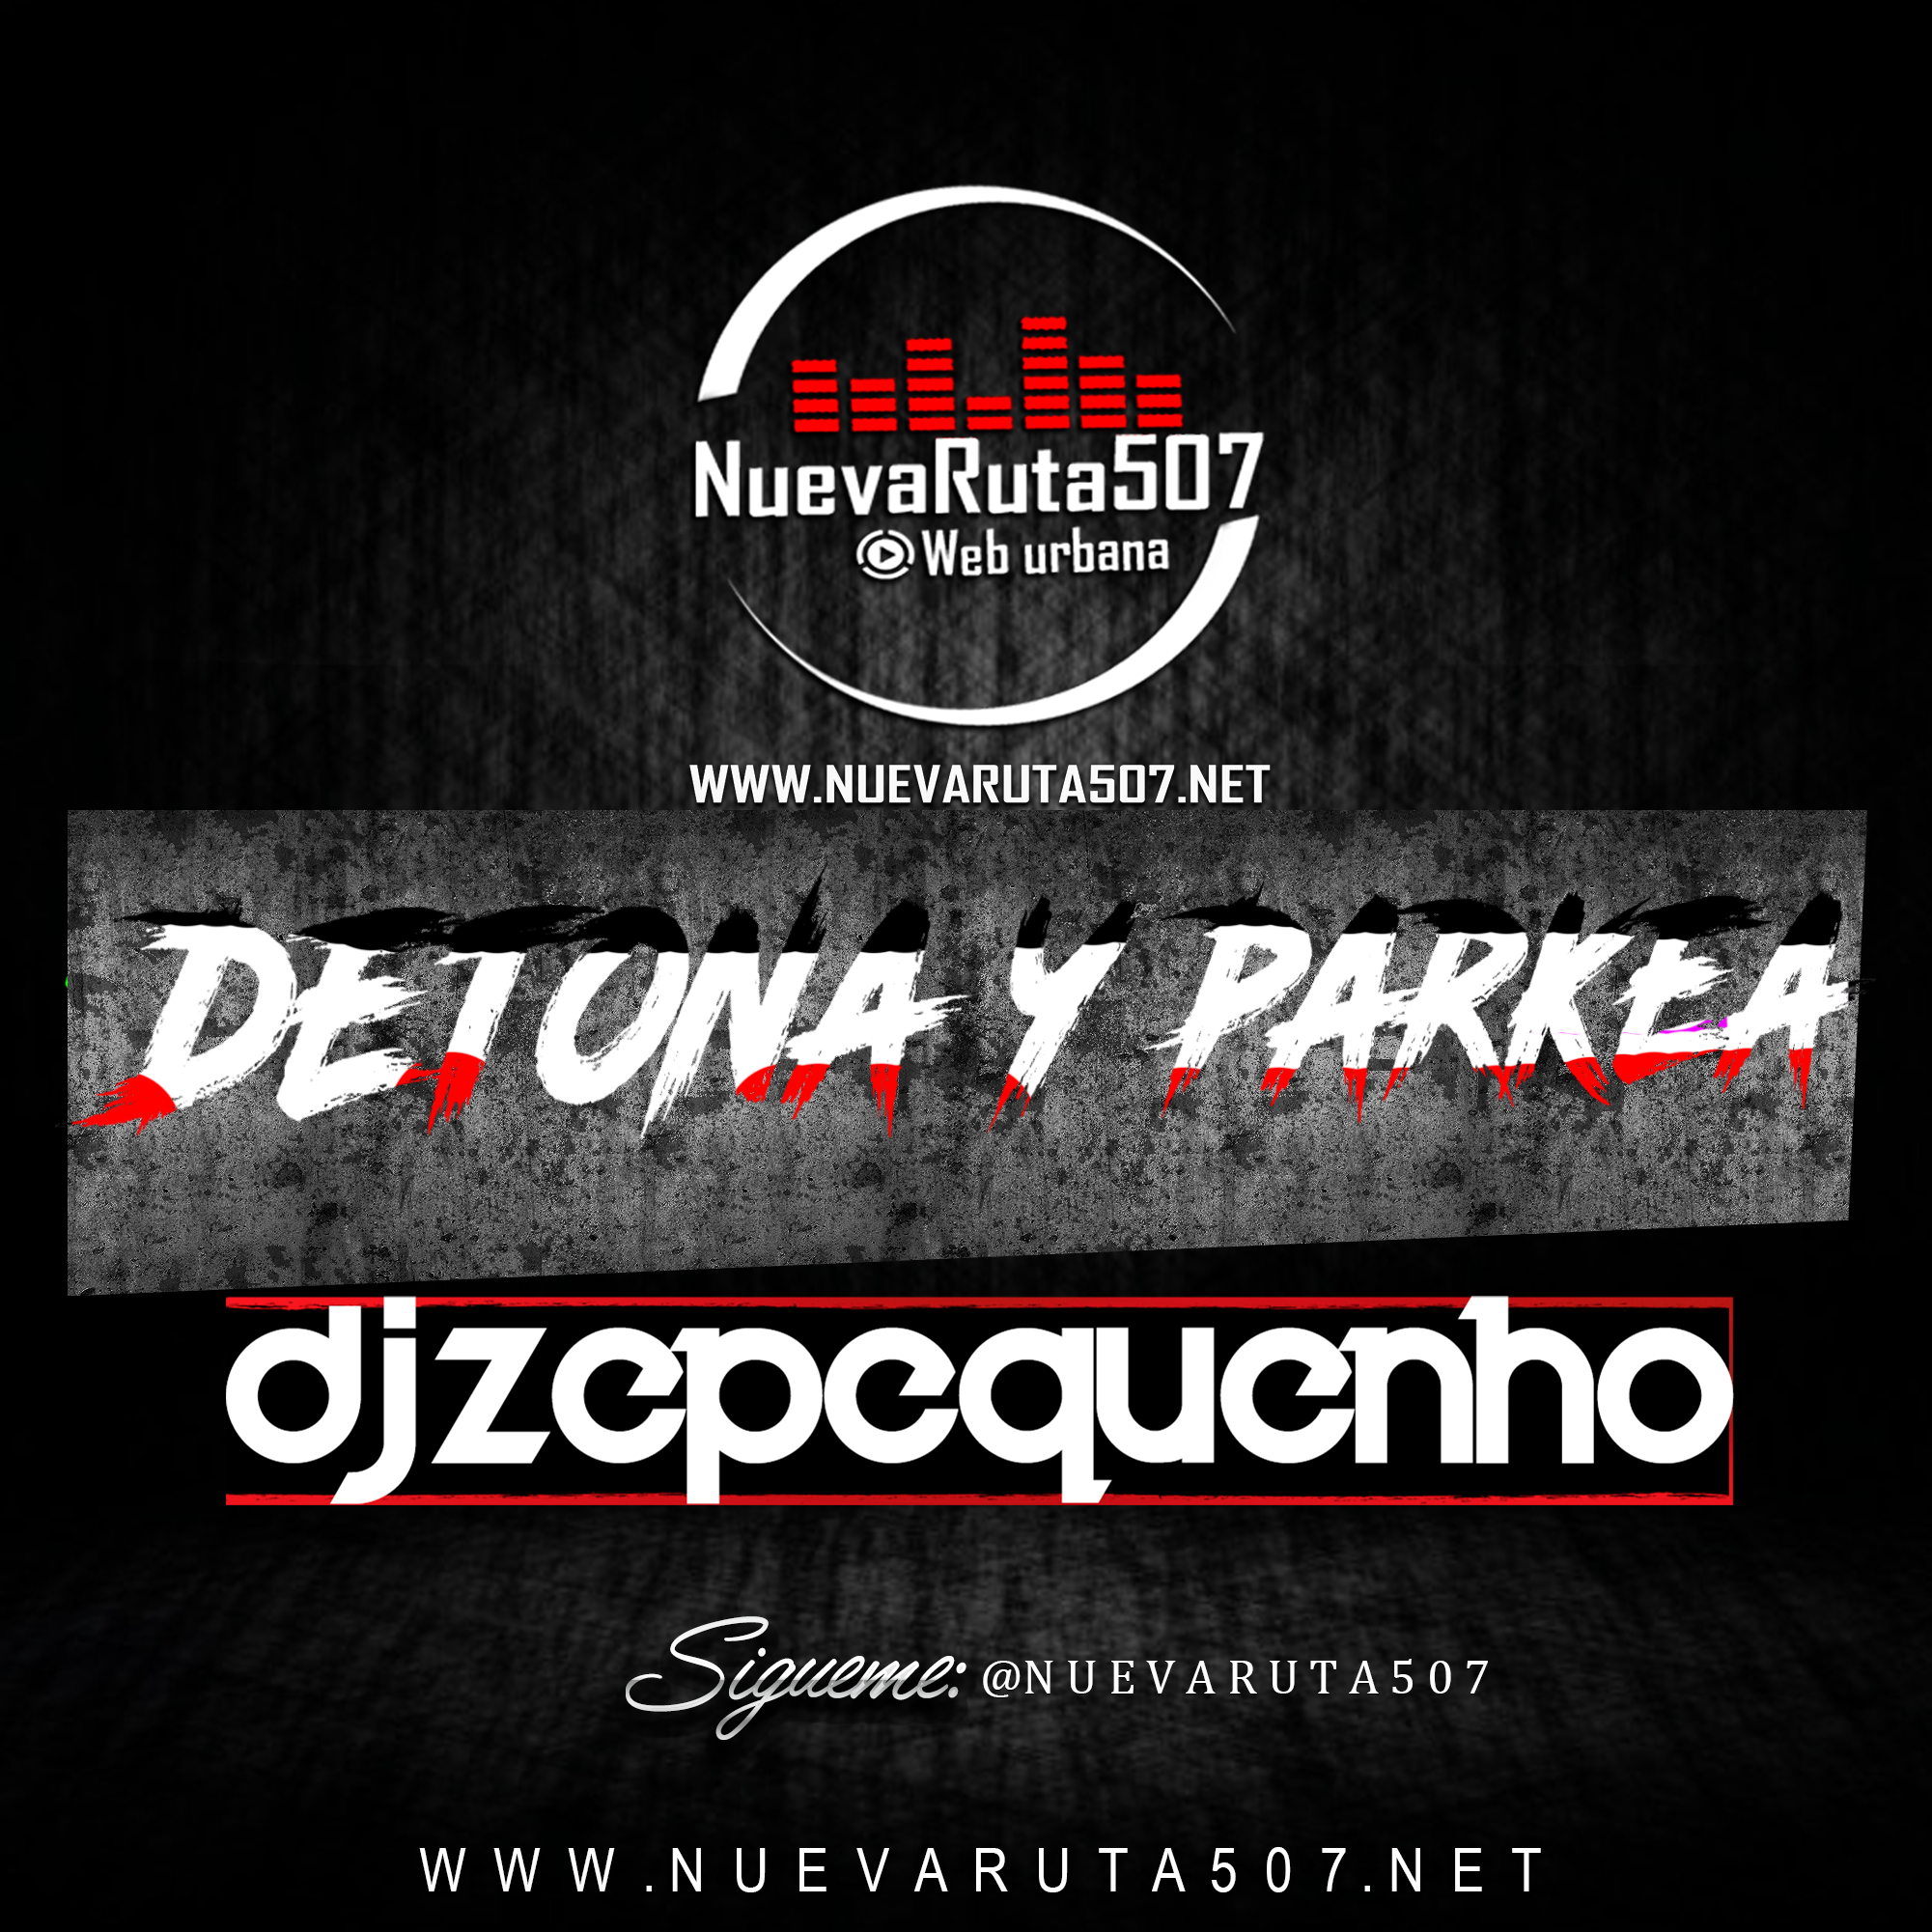 Dj Zepequenho - Detona Y Parkea Mix.mp3